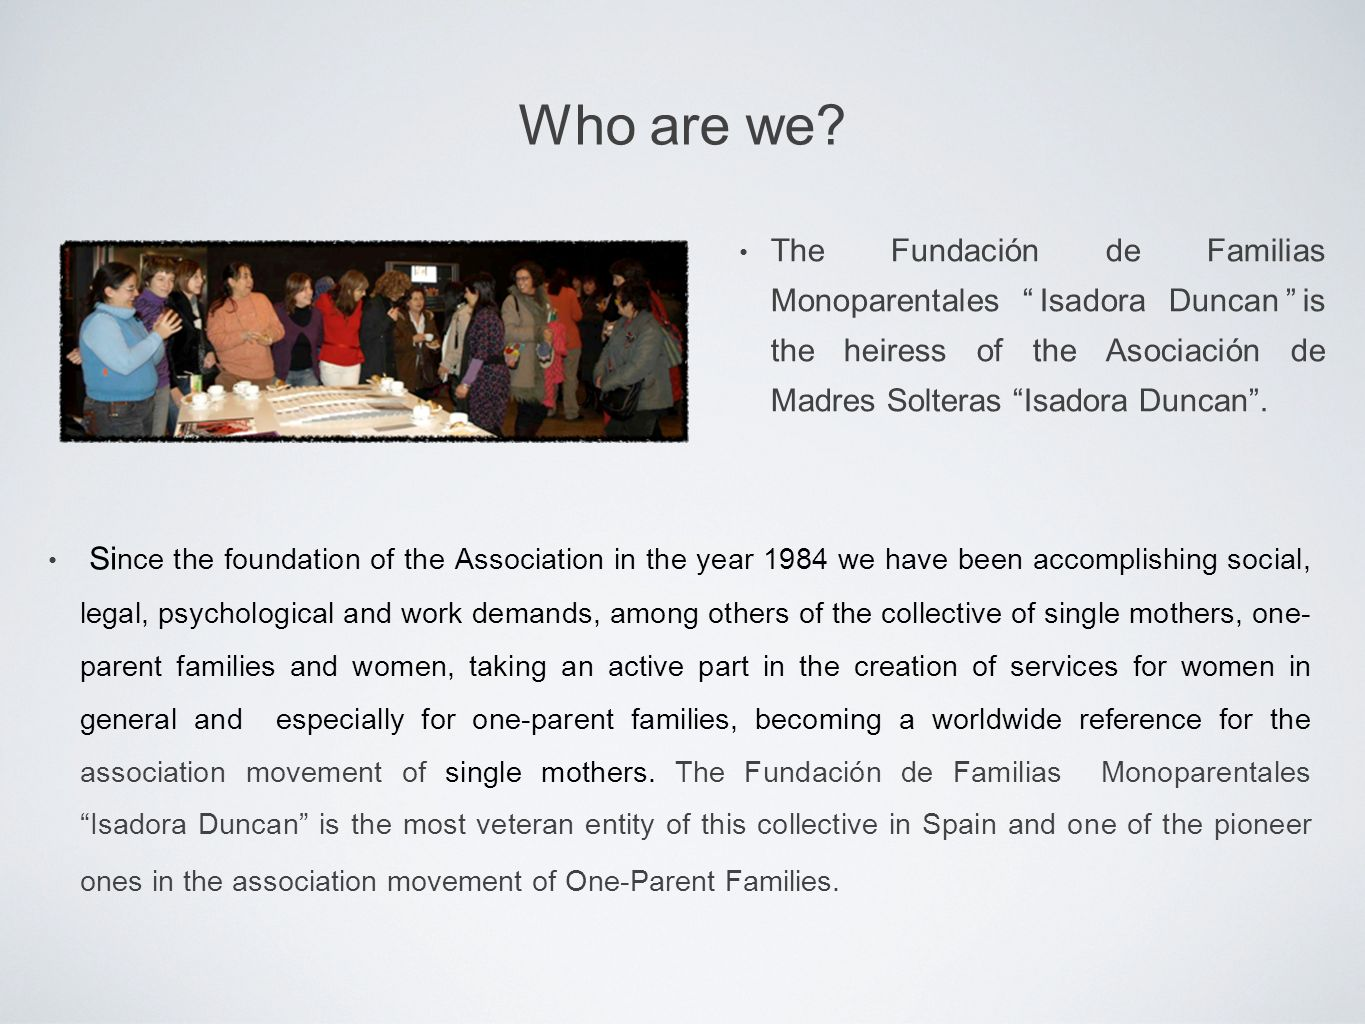 Si nce the foundation of the Association in the year 1984 we have been accomplishing social, legal, psychological and work demands, among others of the collective of single mothers, one- parent families and women, taking an active part in the creation of services for women in general and especially for one-parent families, becoming a worldwide reference for the association movement of single mothers.